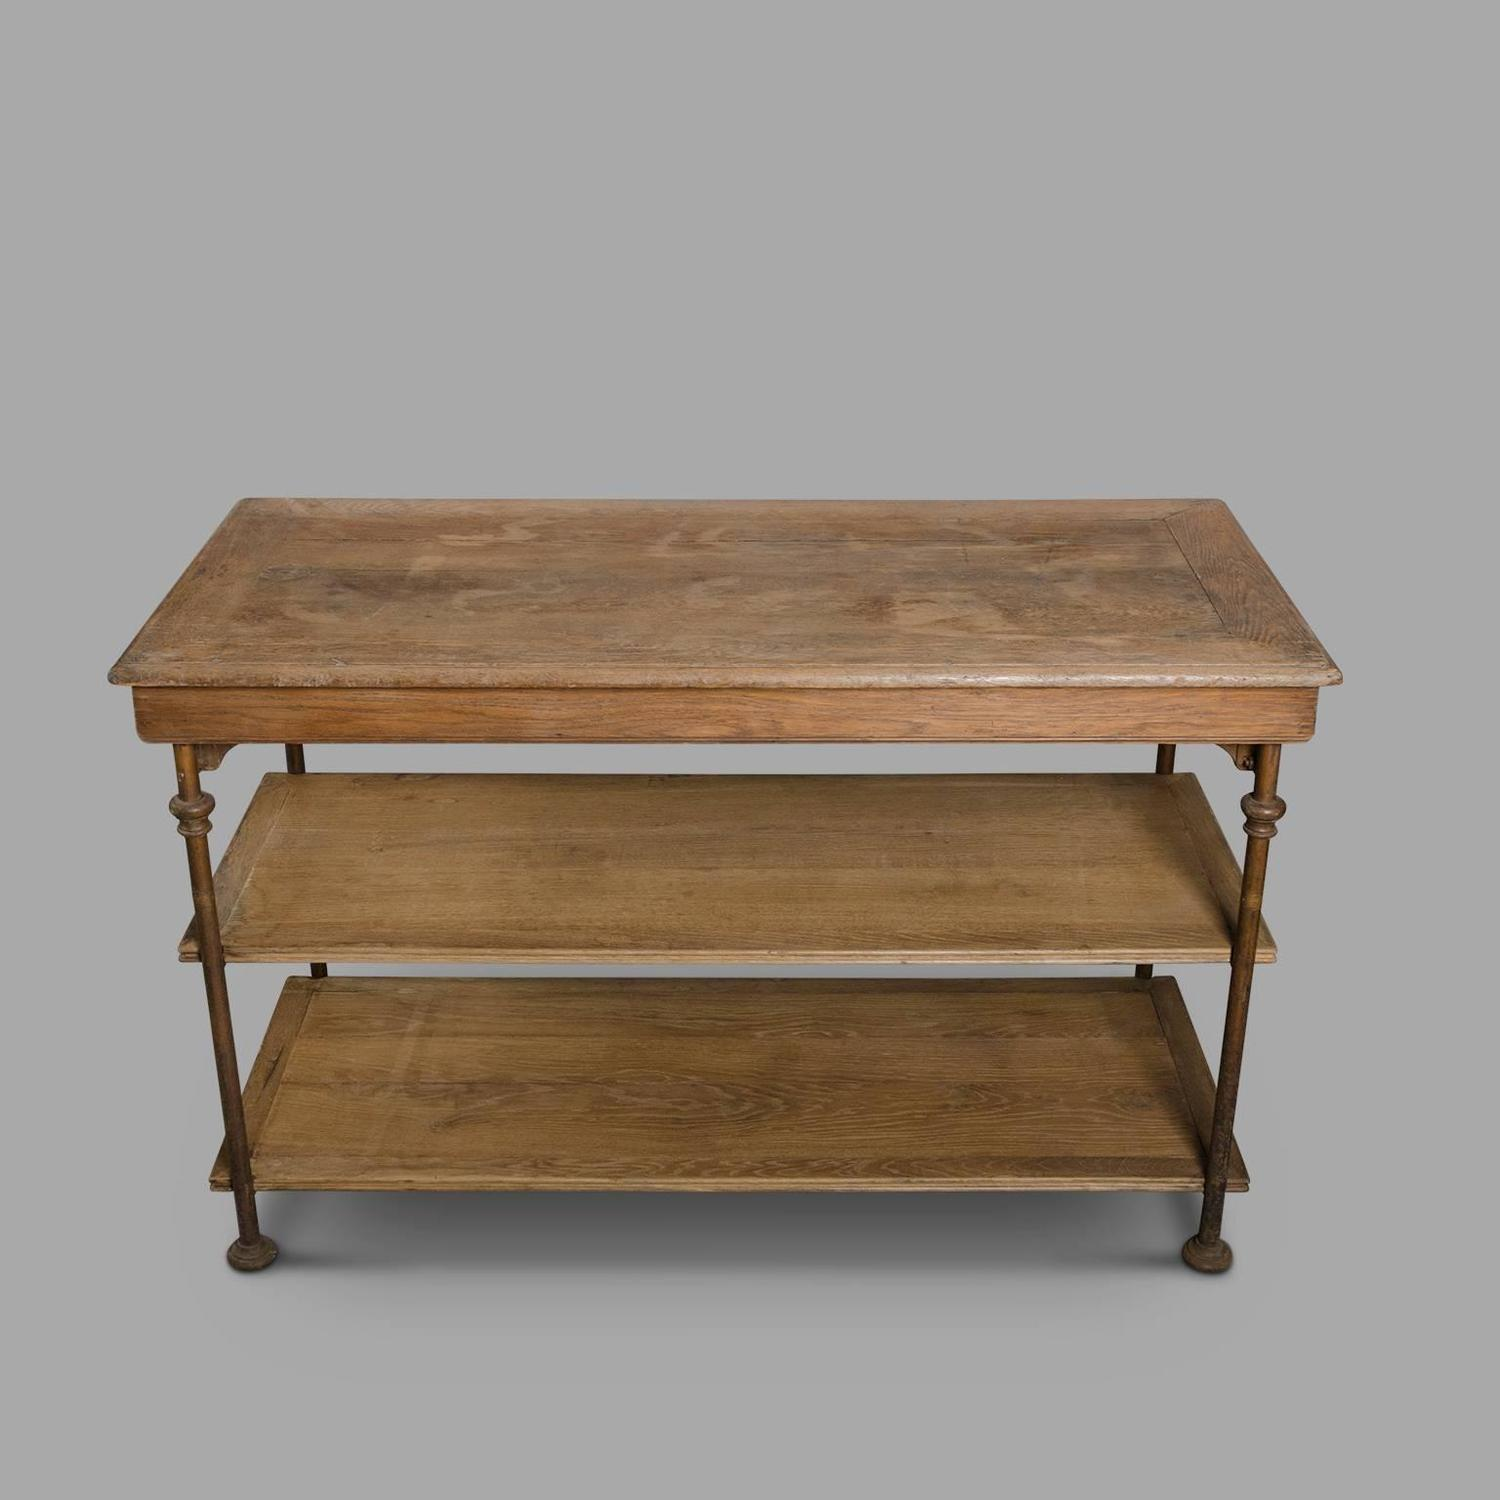 Late 19th century clothier tables theodore scherf at 1stdibs for Table th structure